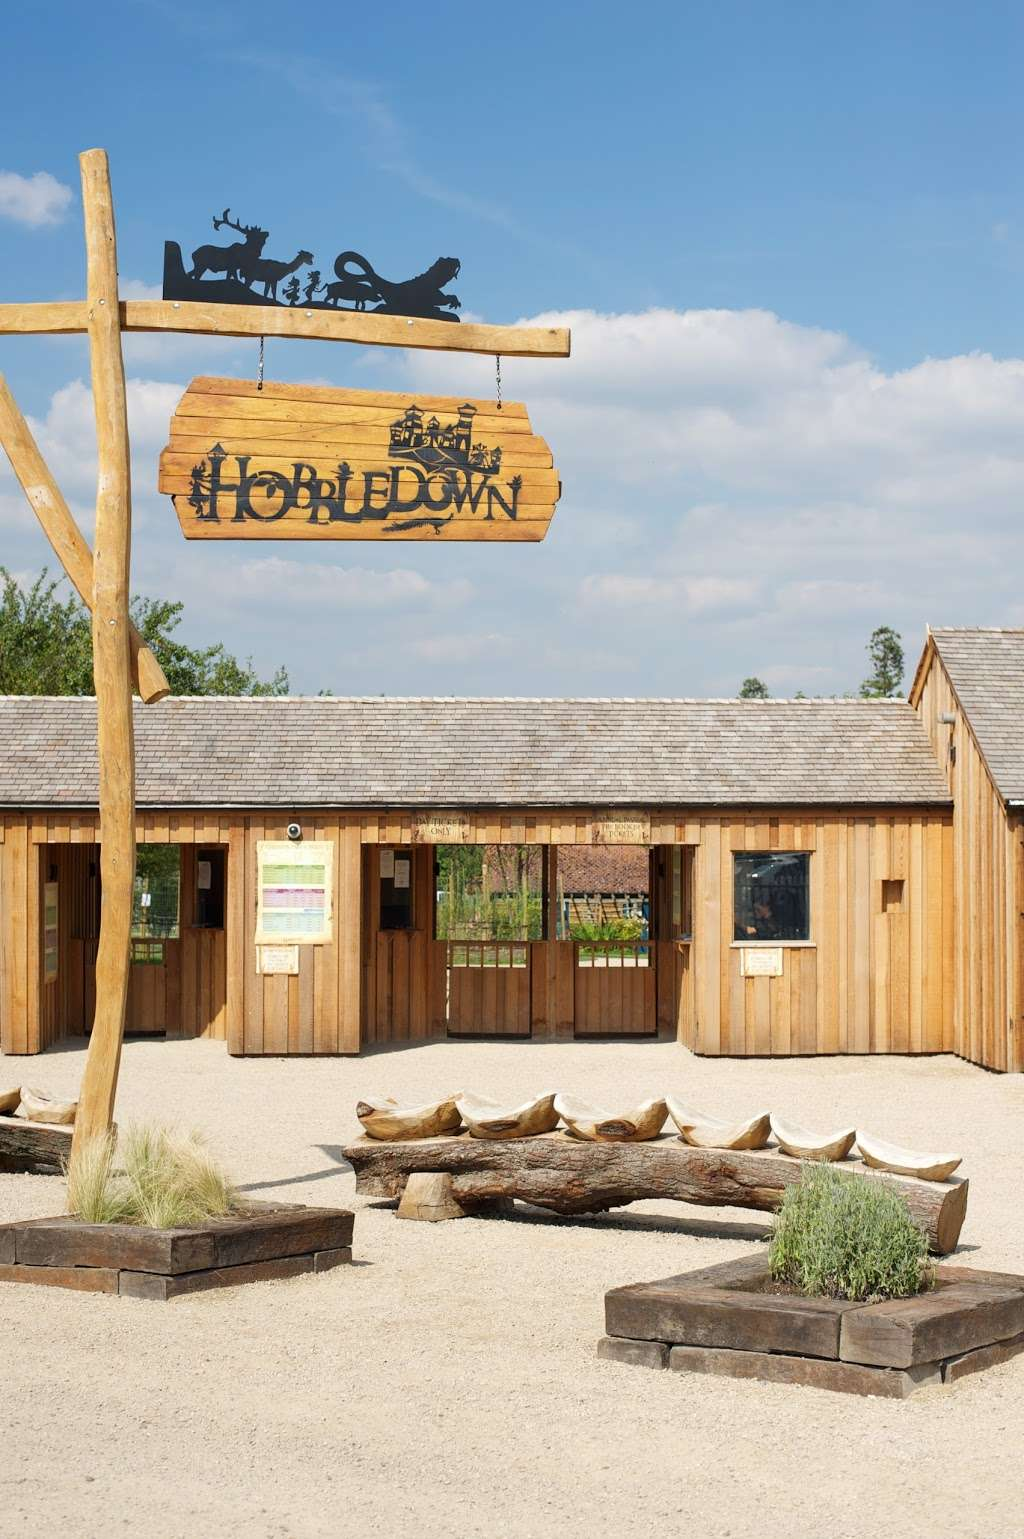 Hobbledown Adventure Farm Park and Zoo - zoo  | Photo 5 of 10 | Address: Horton Ln, Epsom KT19 8PT, UK | Phone: 01372 848990